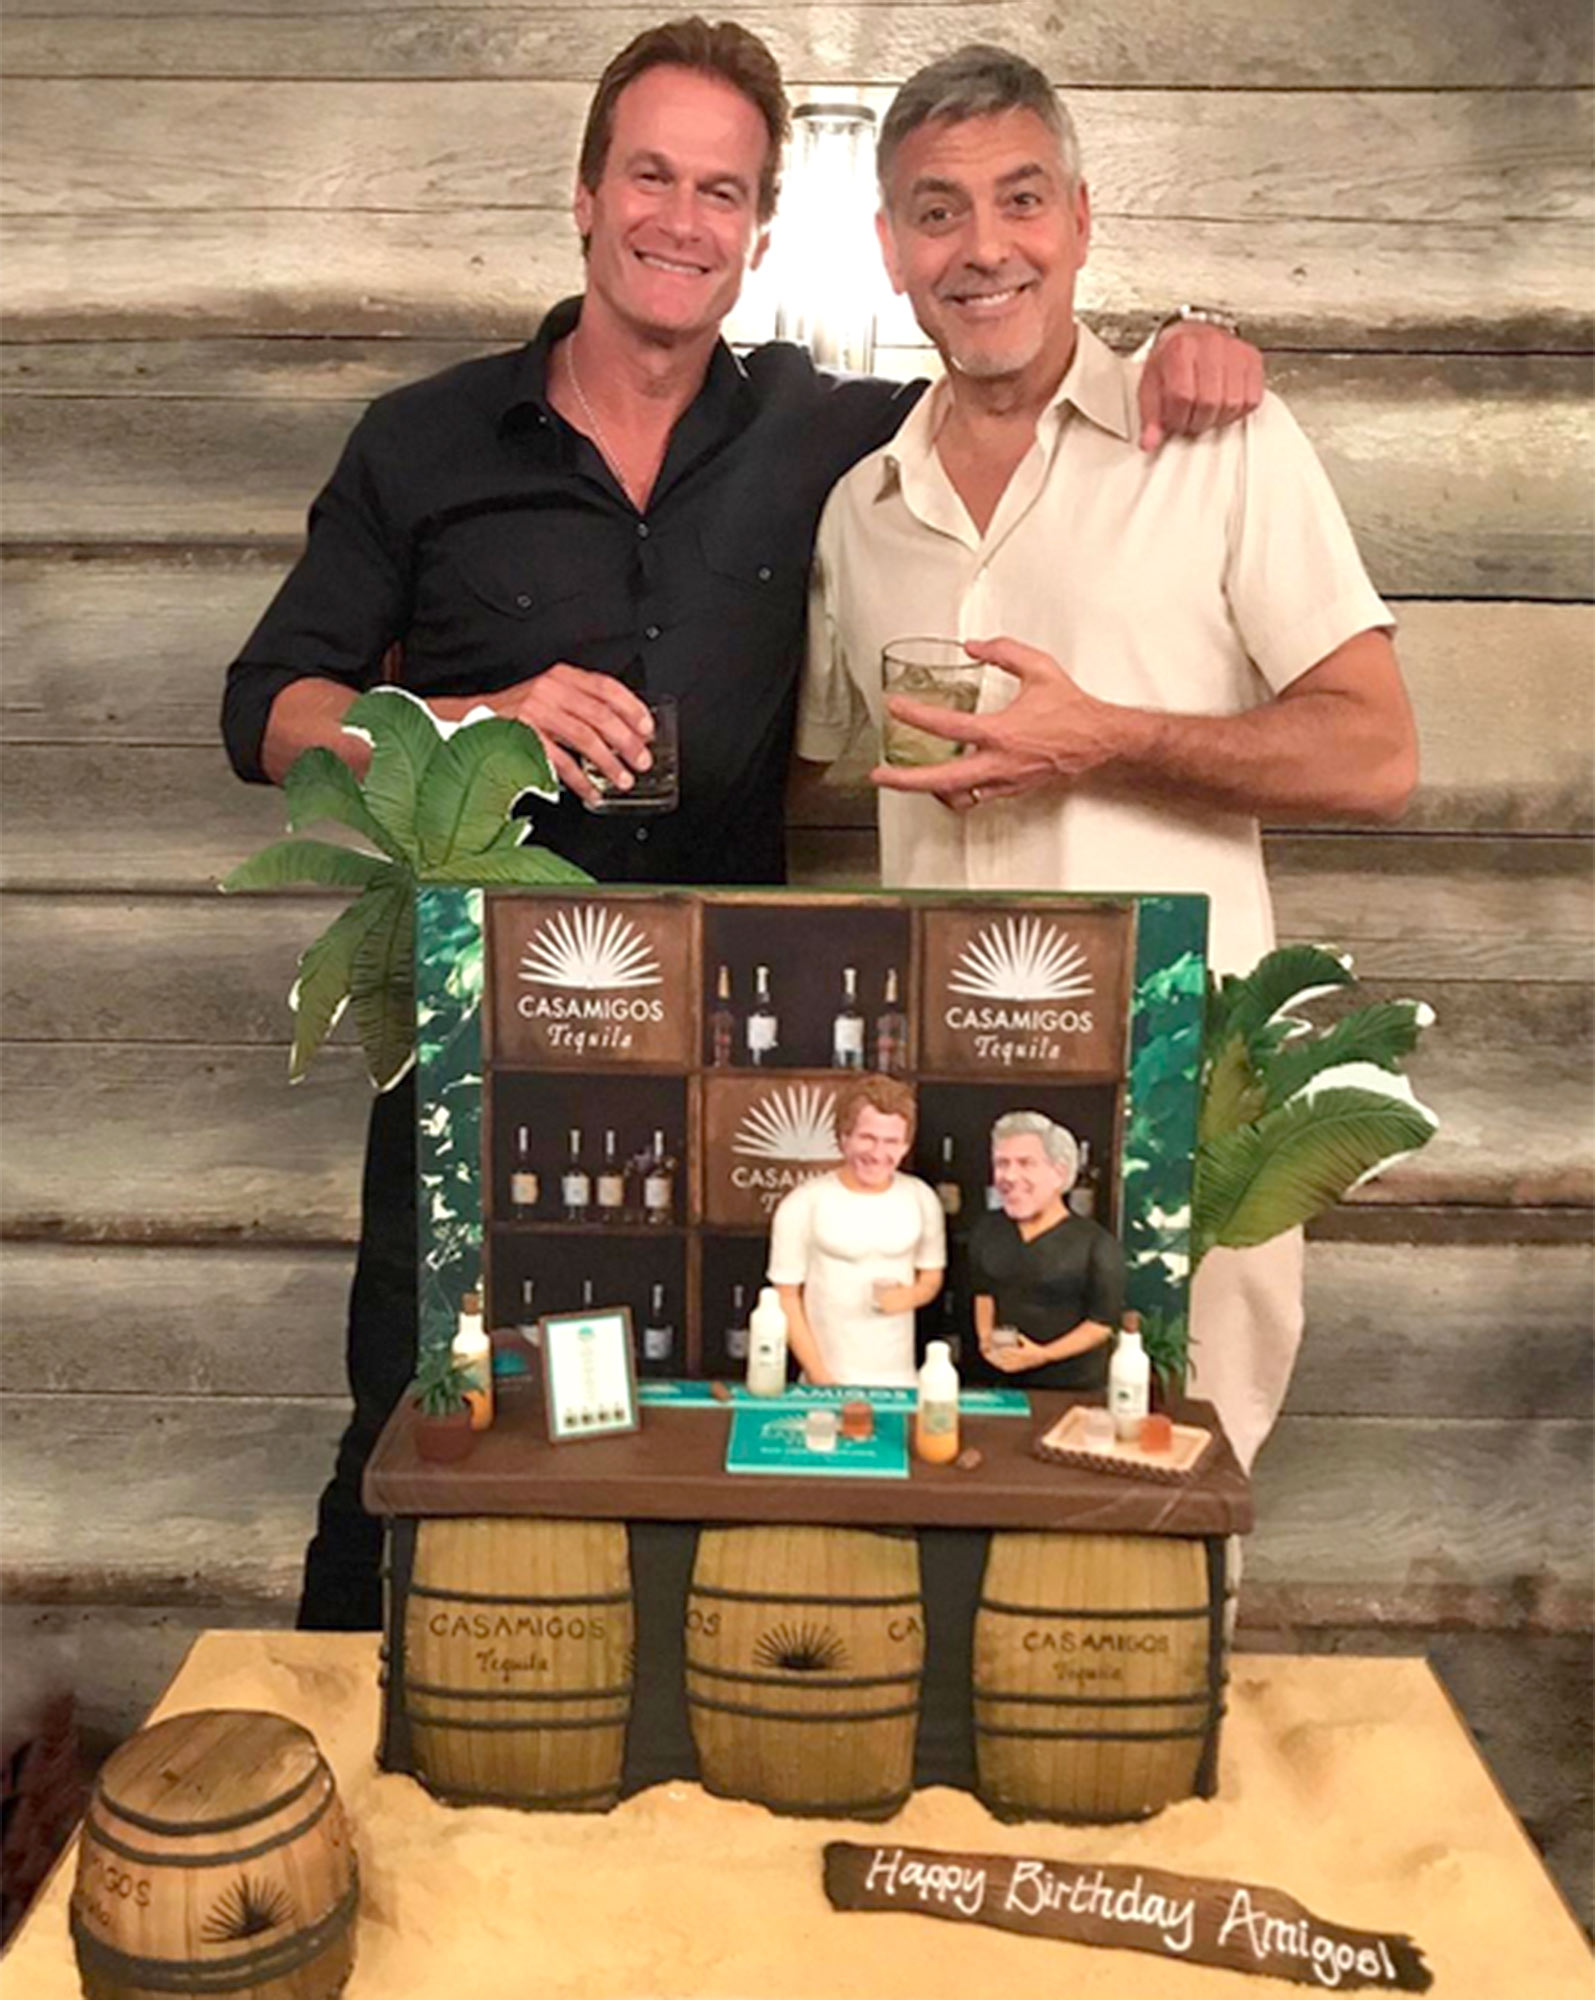 George Clooney and Rande Gerber Sell Casamigos Tequila for $1 Billion